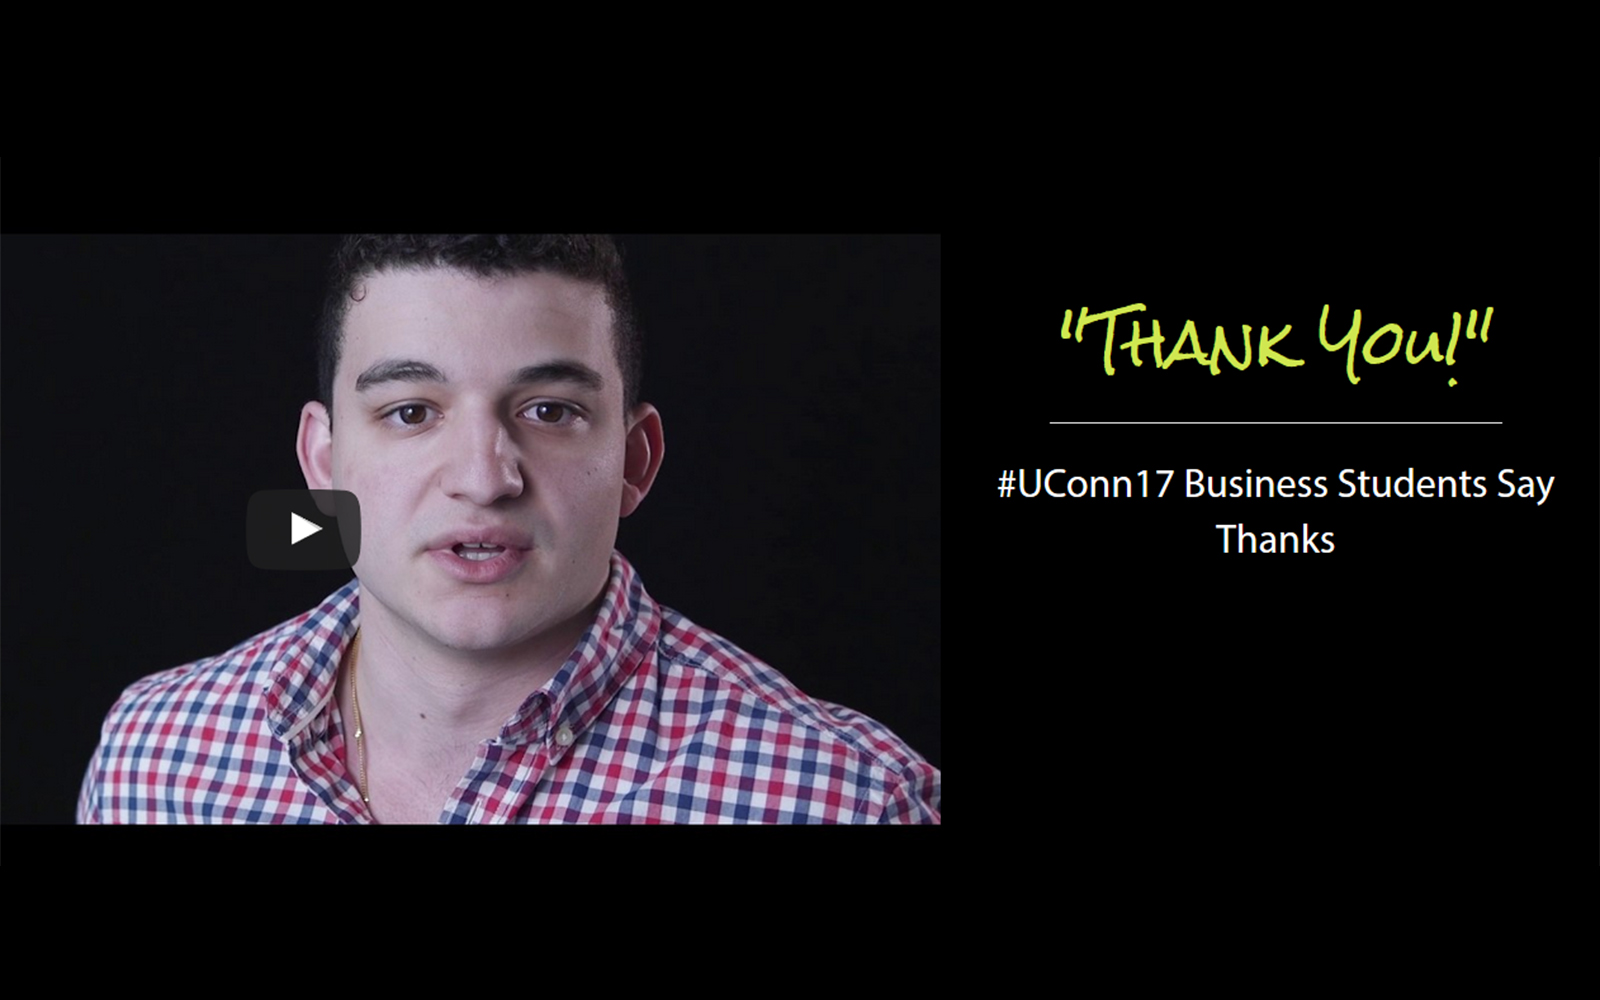 #UConn17 Business Students Say Thanks